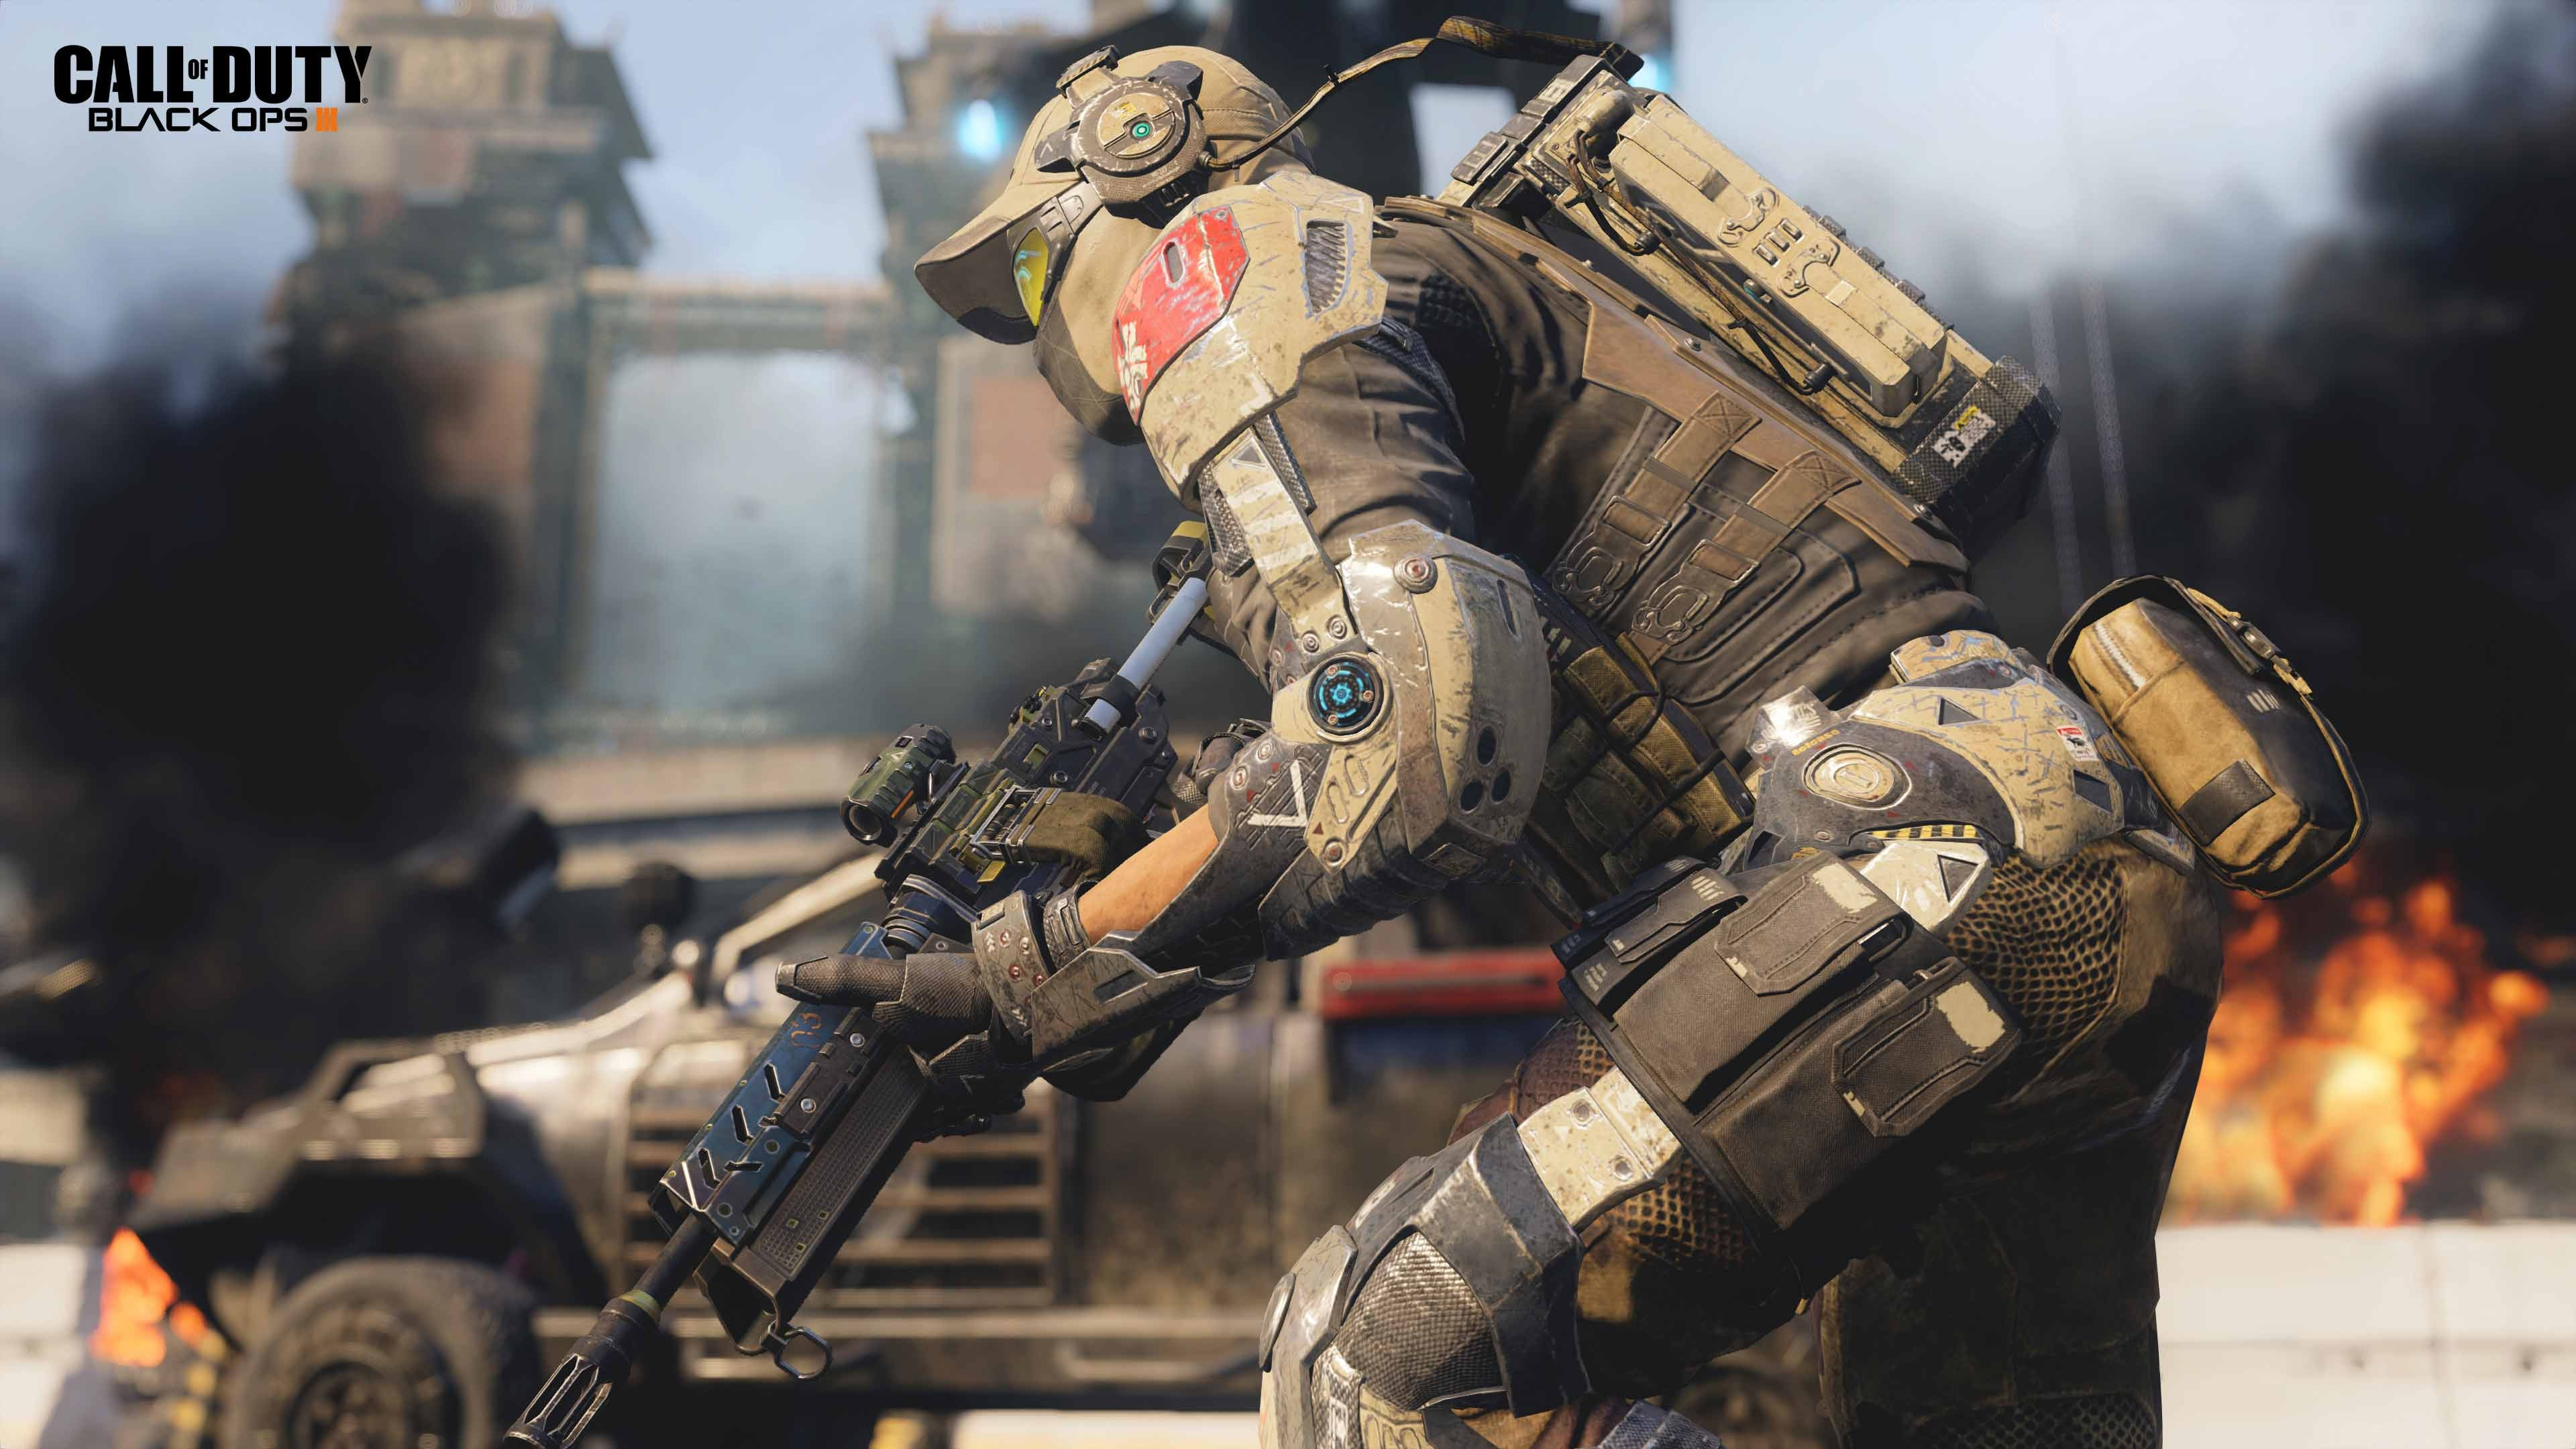 call of duty black ops 3 pc ps4 one call of duty black ops 3 est l 3840x2160